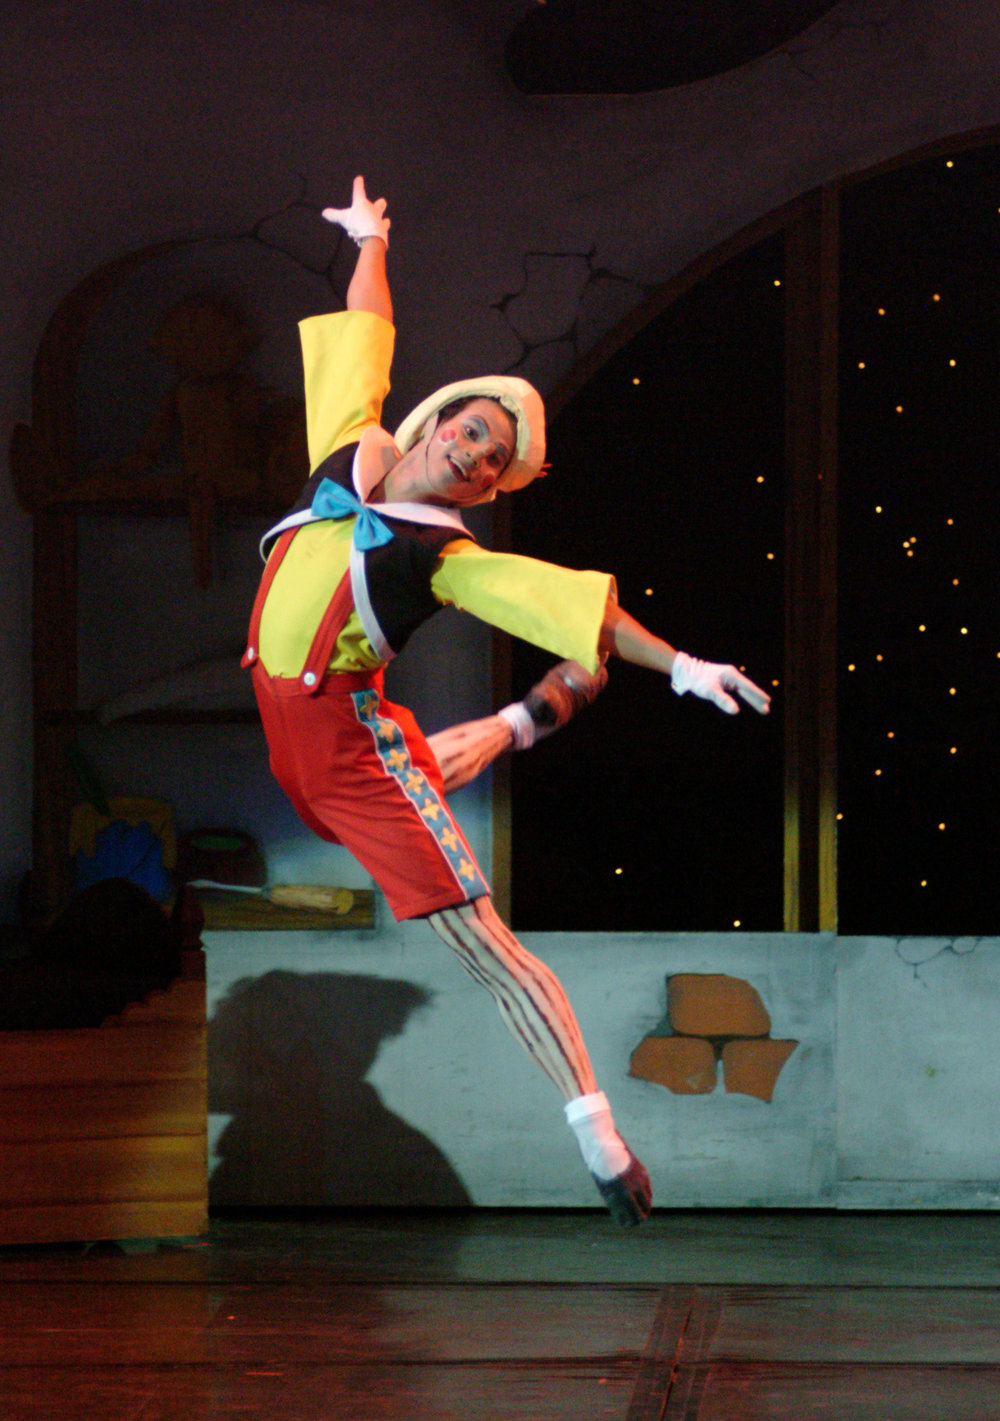 Alvin Santos reprised the lead role which he had first danced two years before. In 2015, he portrayed Pinocchio yet again in its full-length version. Photo by Ocs Alvarez from the Ballet Manila Archives collection